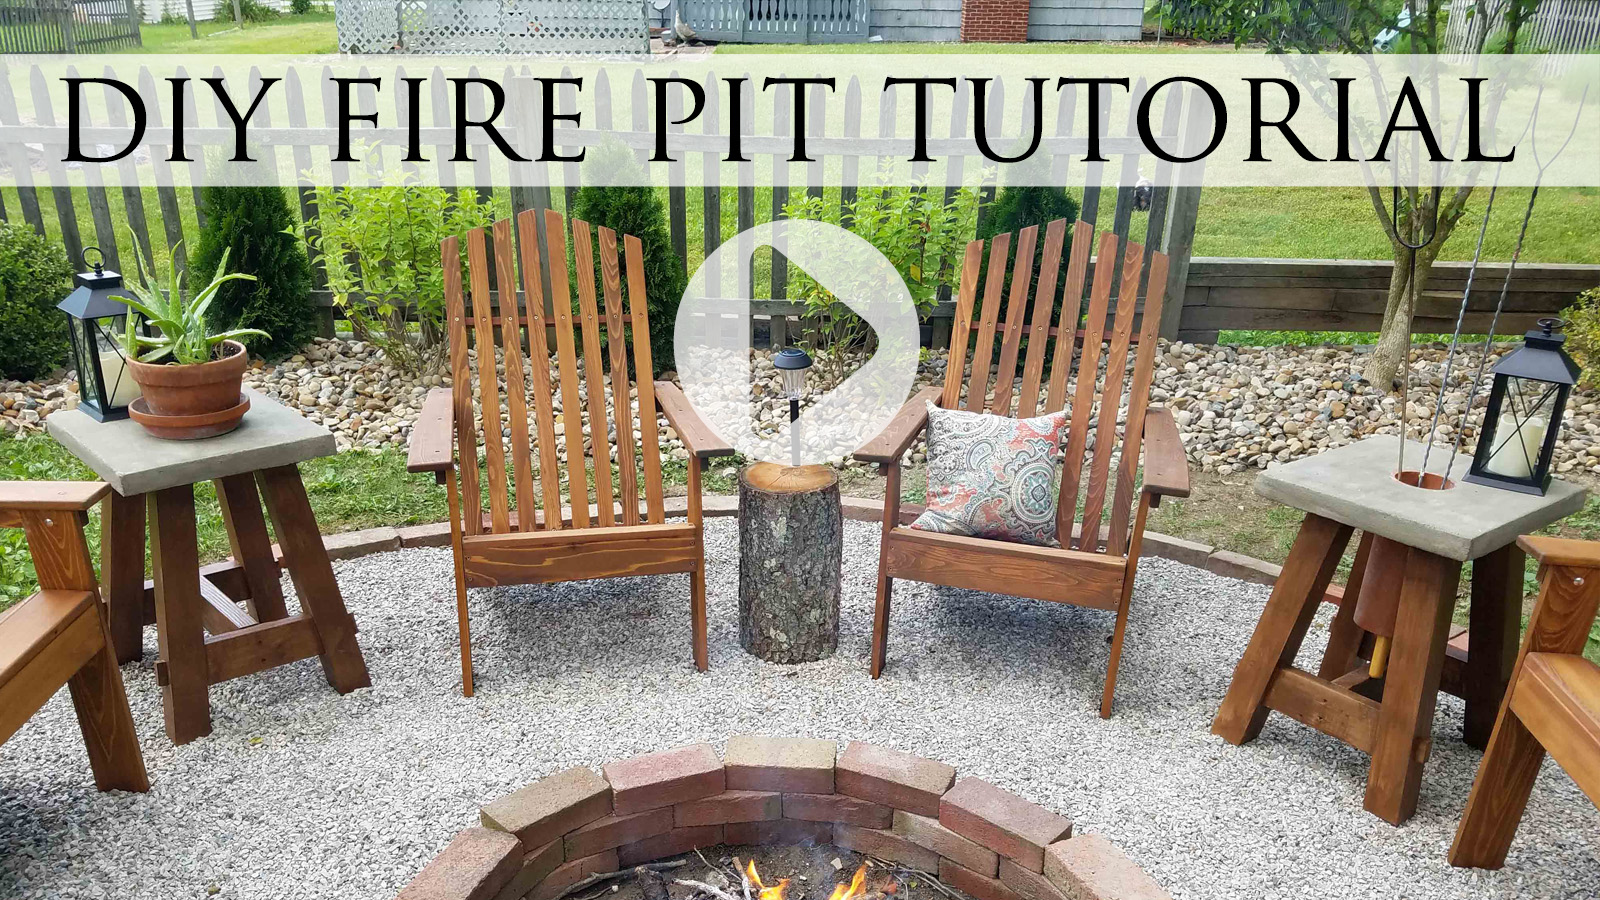 Video Tutorial DIY Fire Pit by Larissa & Family of Prodigal Pieces | prodigalpieces.com #prodigalpieces